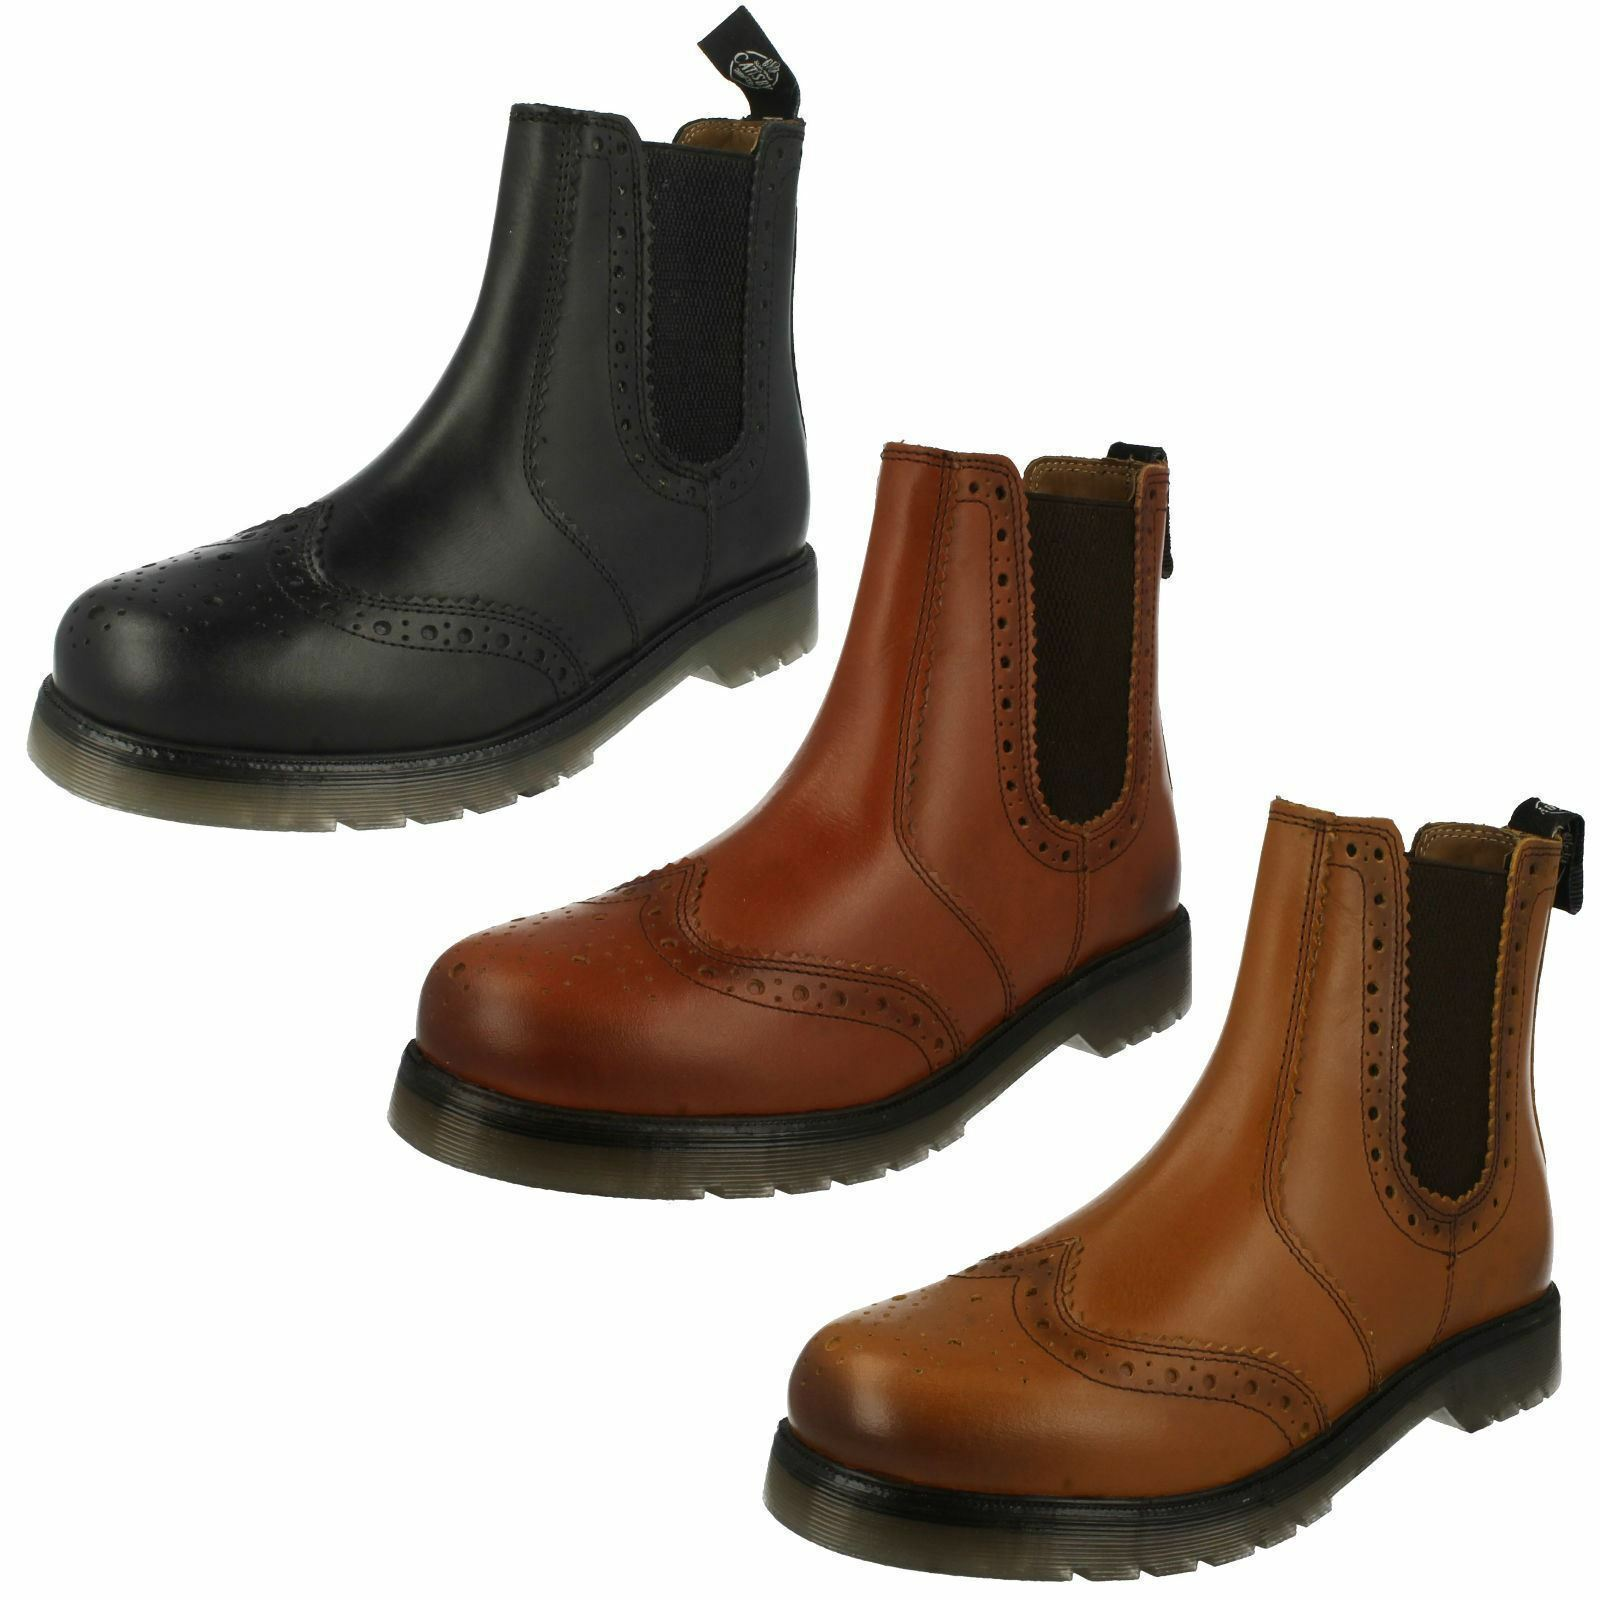 Mens 1800 / 01800 leather brogue boots By Catesby Retail price